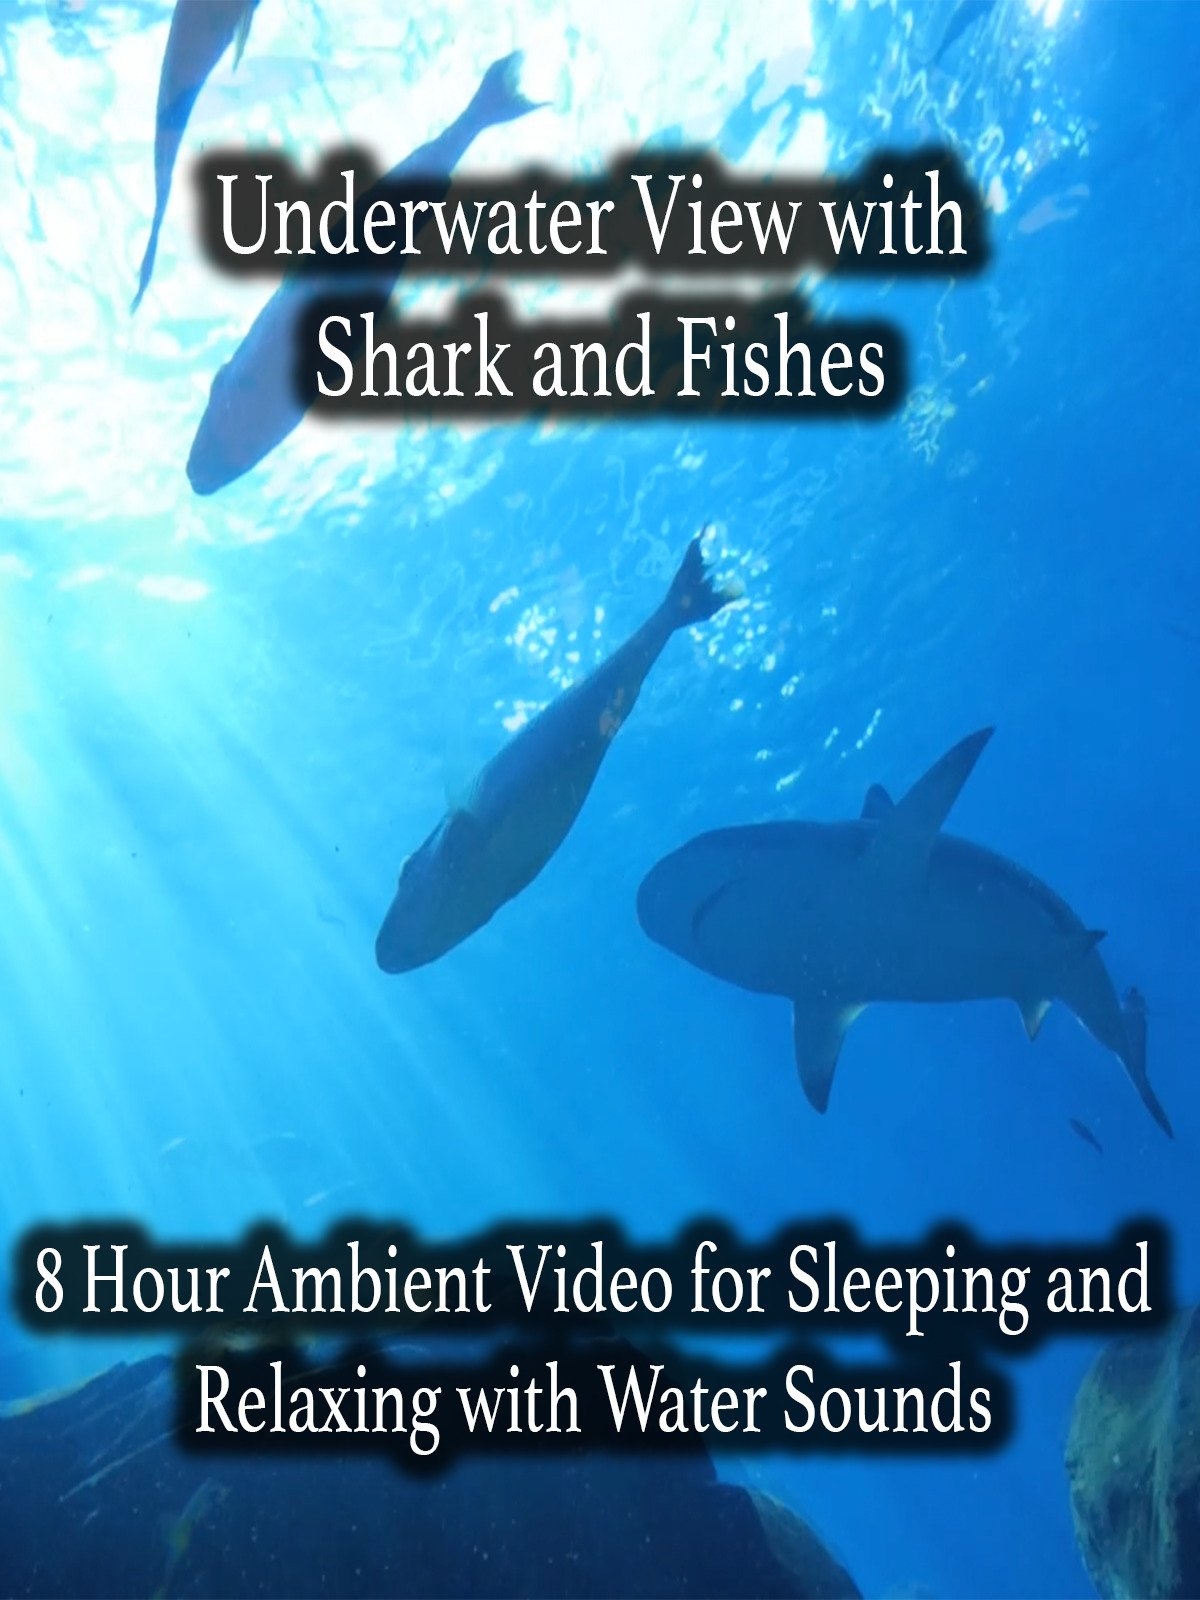 Underwater View with Shark and Fishes 8 Hour Ambient Video for Sleeping and Relaxing with Water Sounds